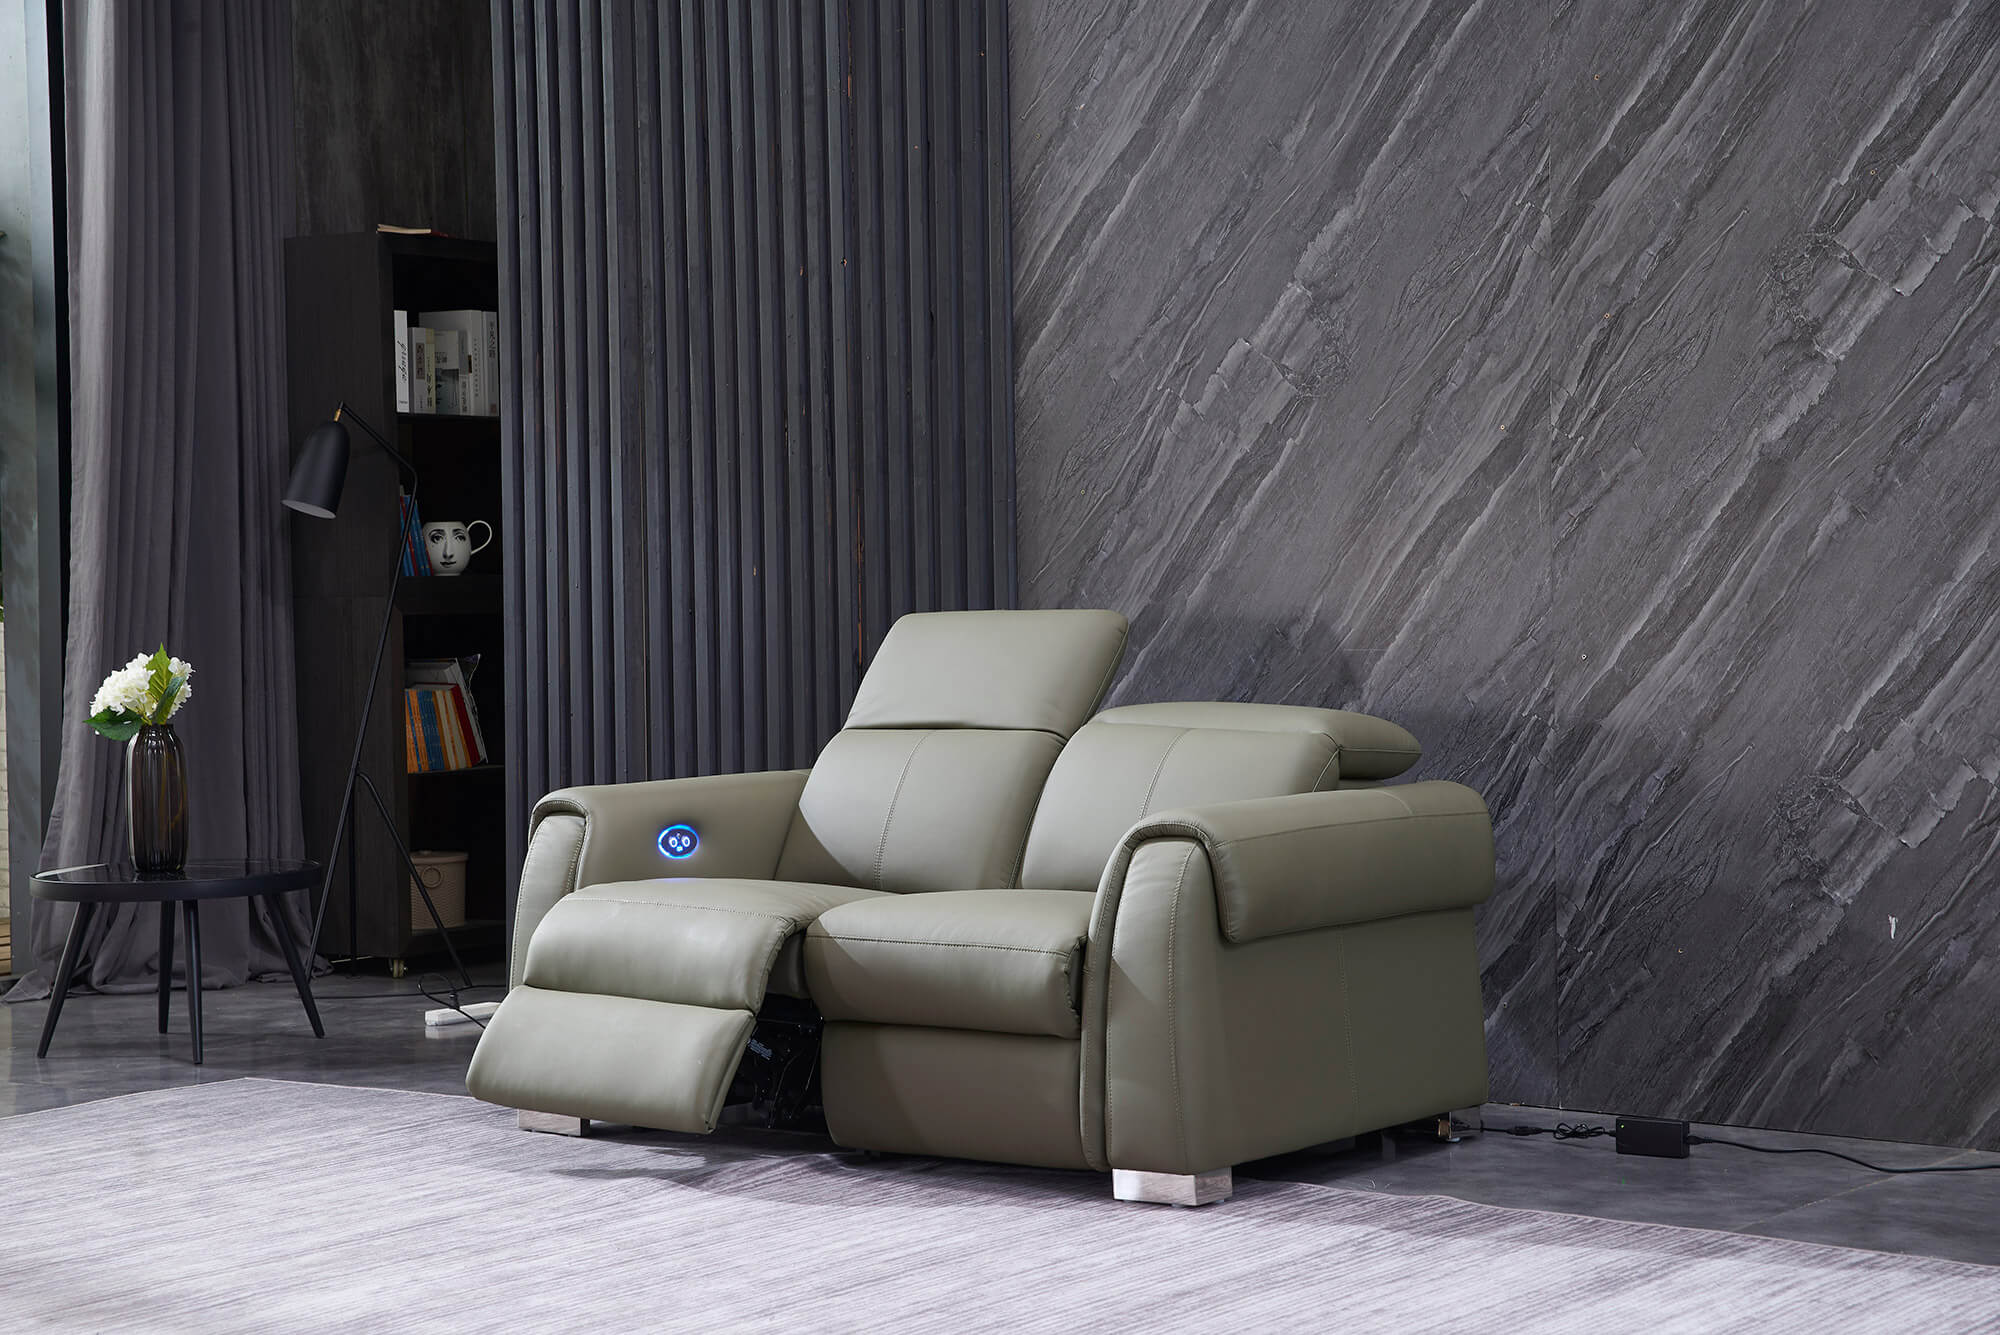 olive leather electric recliner sofa 2 seater half reclined